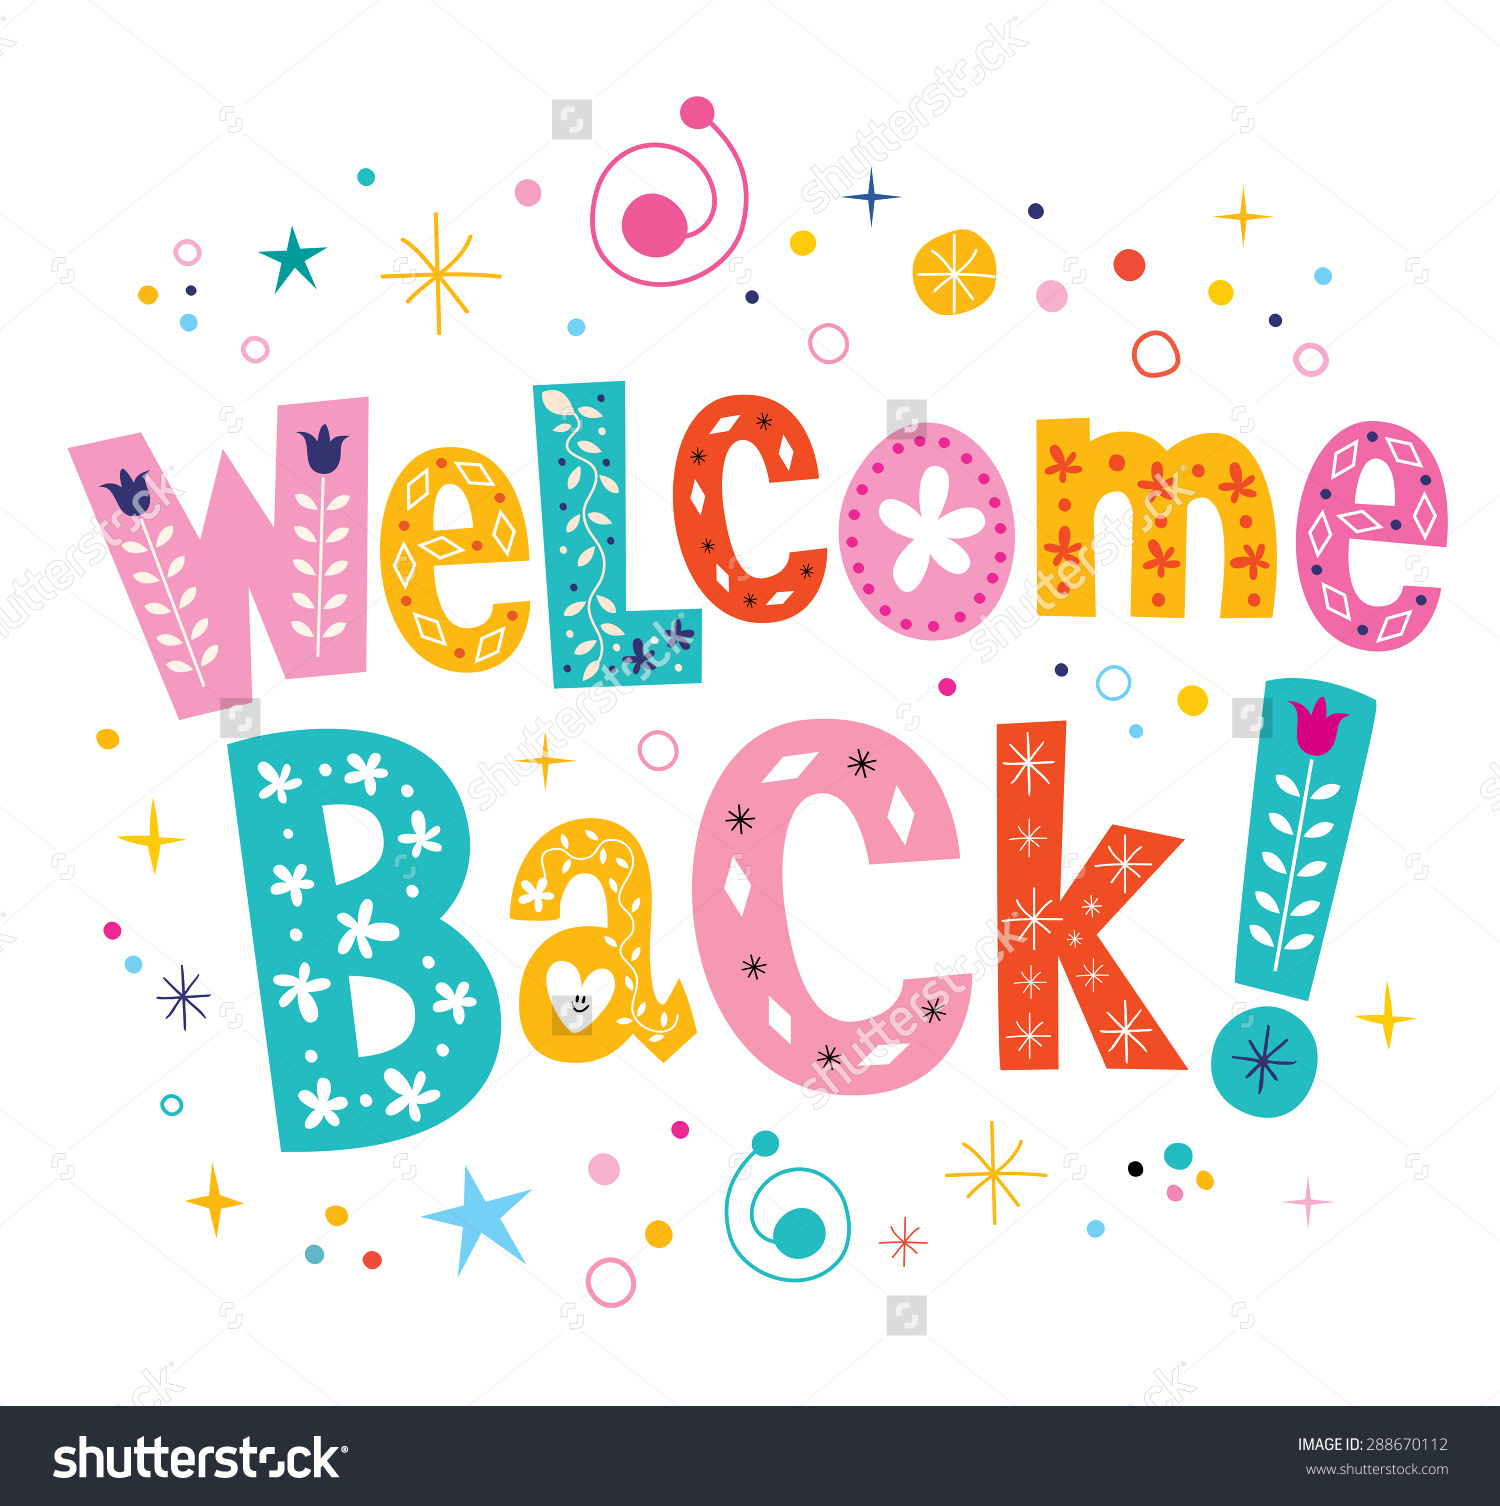 Save to a lightbox - Welcome Back To Work Clipart